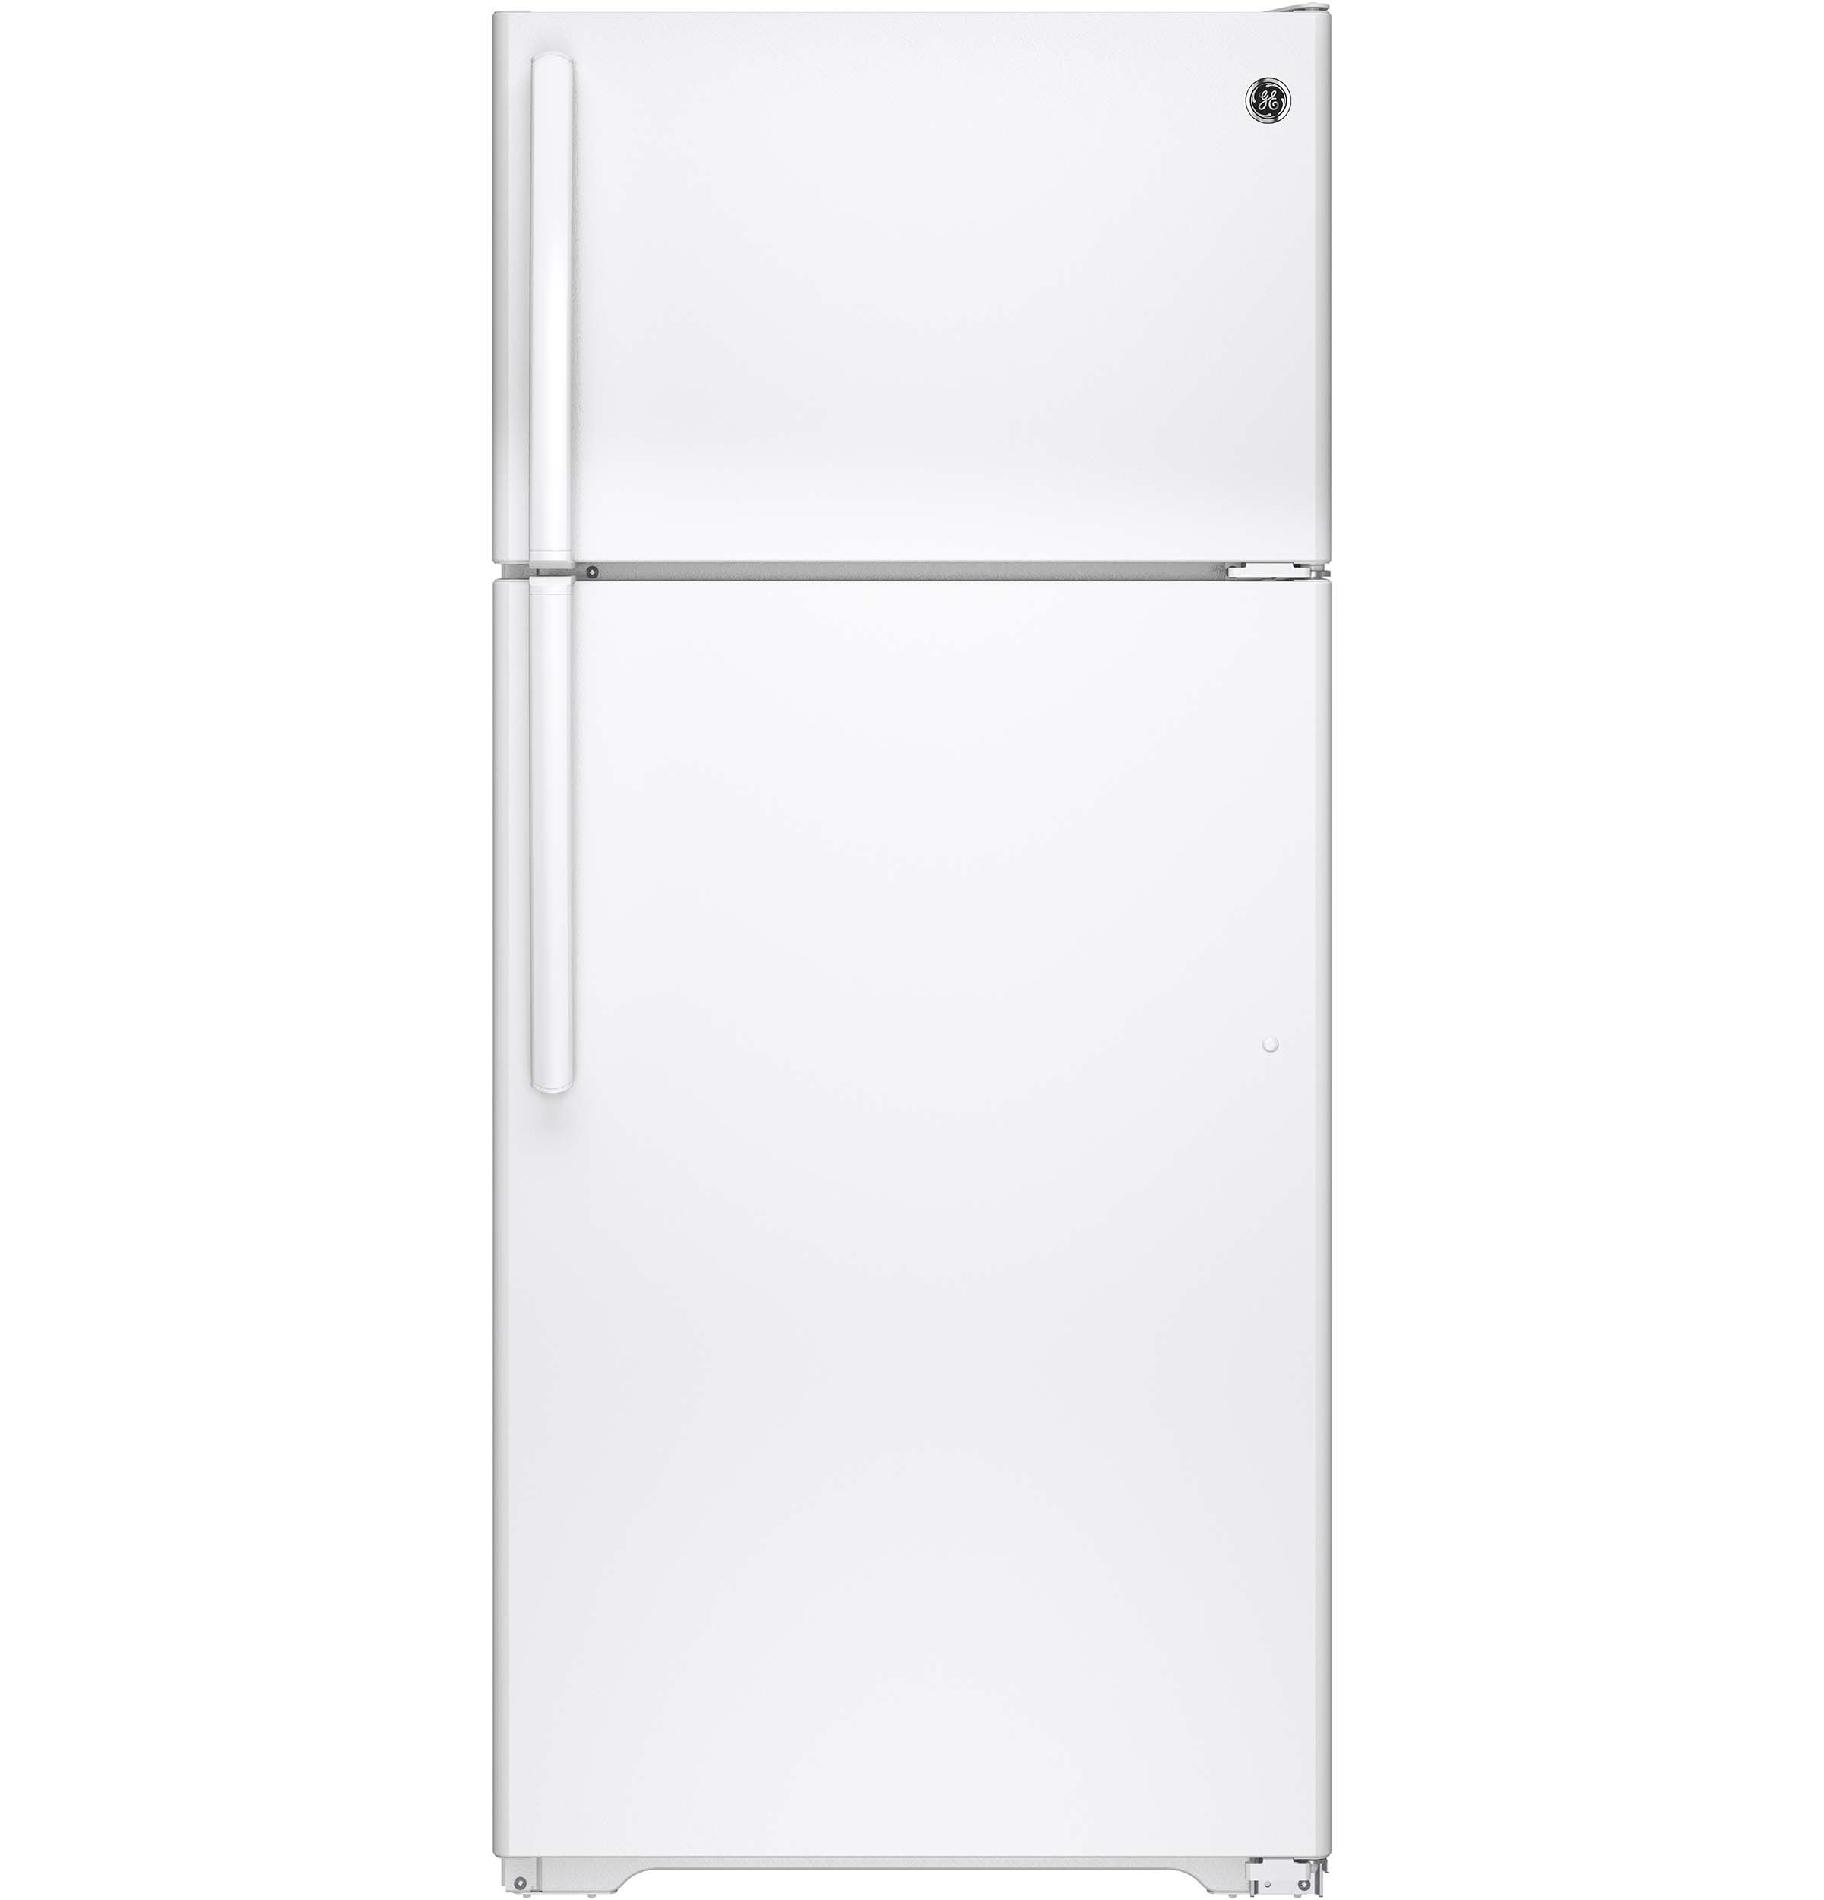 GE� 15.5 CU. FT. TOP FREEZER REFRIGERATOR, WHITE, REVERSIBLE DOOR SWING